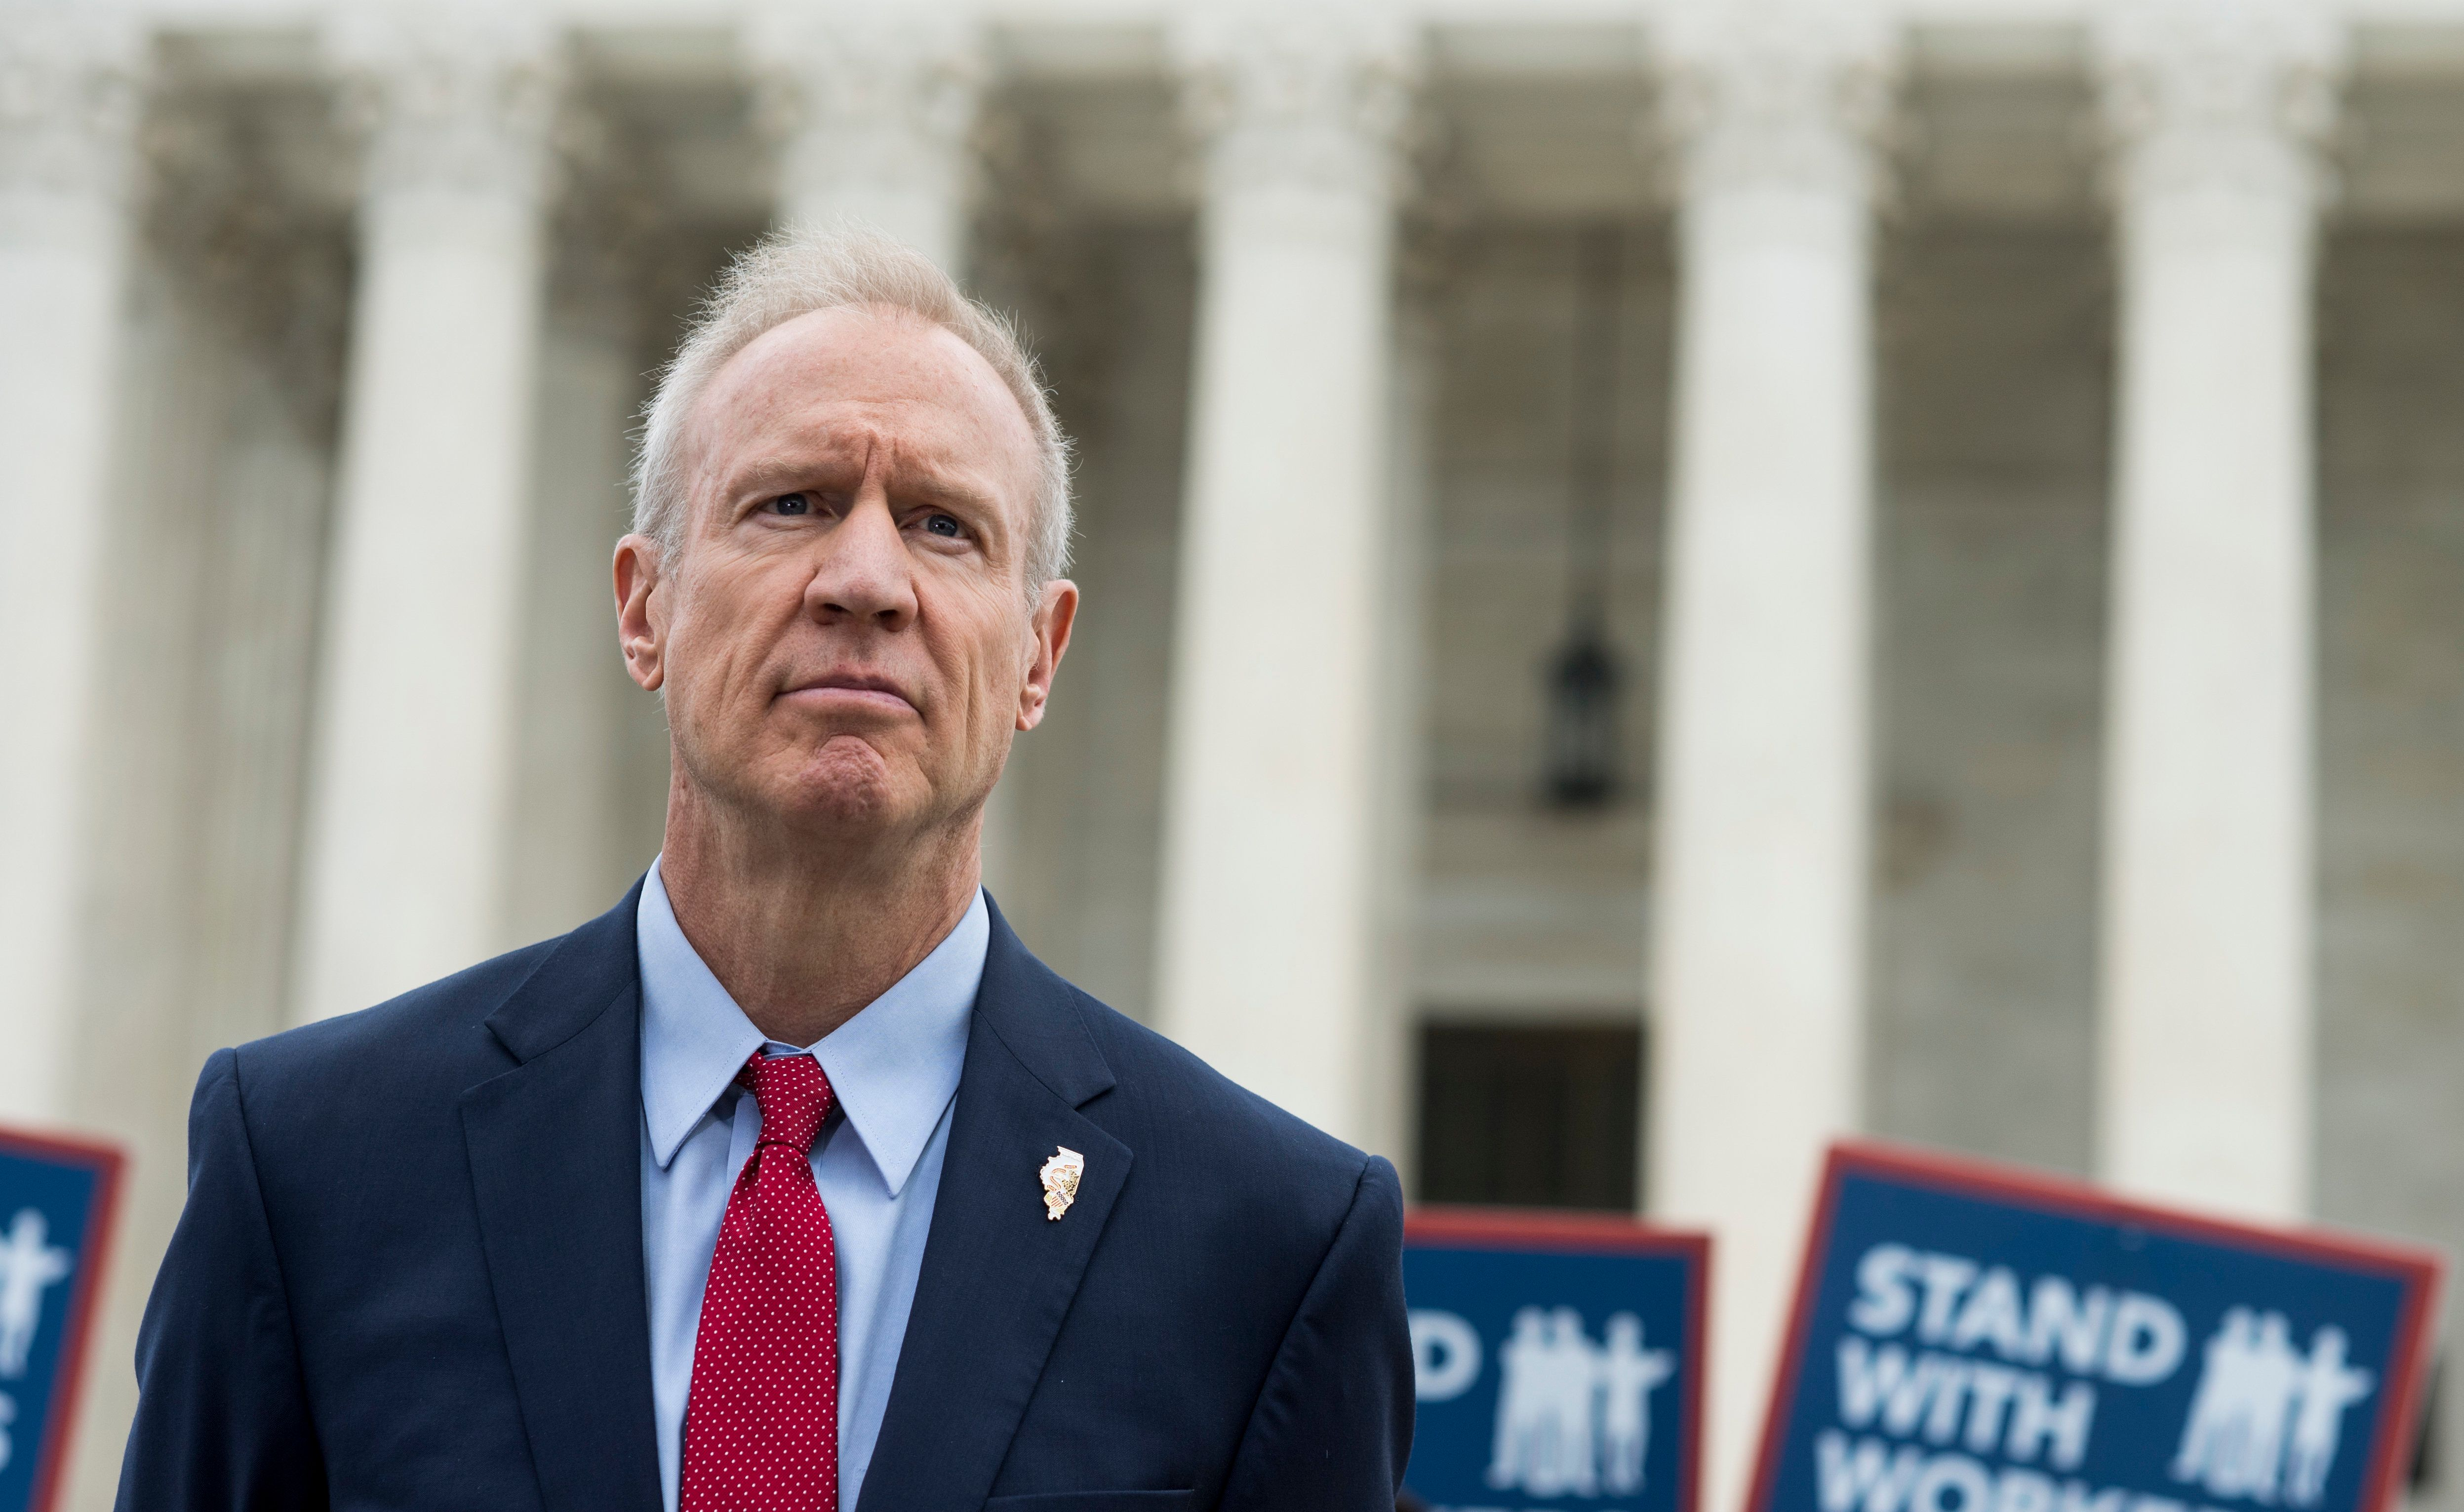 Ilinois Gov. Bruce Rauner lent his support to a case that eventually resulted in a U.S. Supreme Court undercutting unions nationwide.